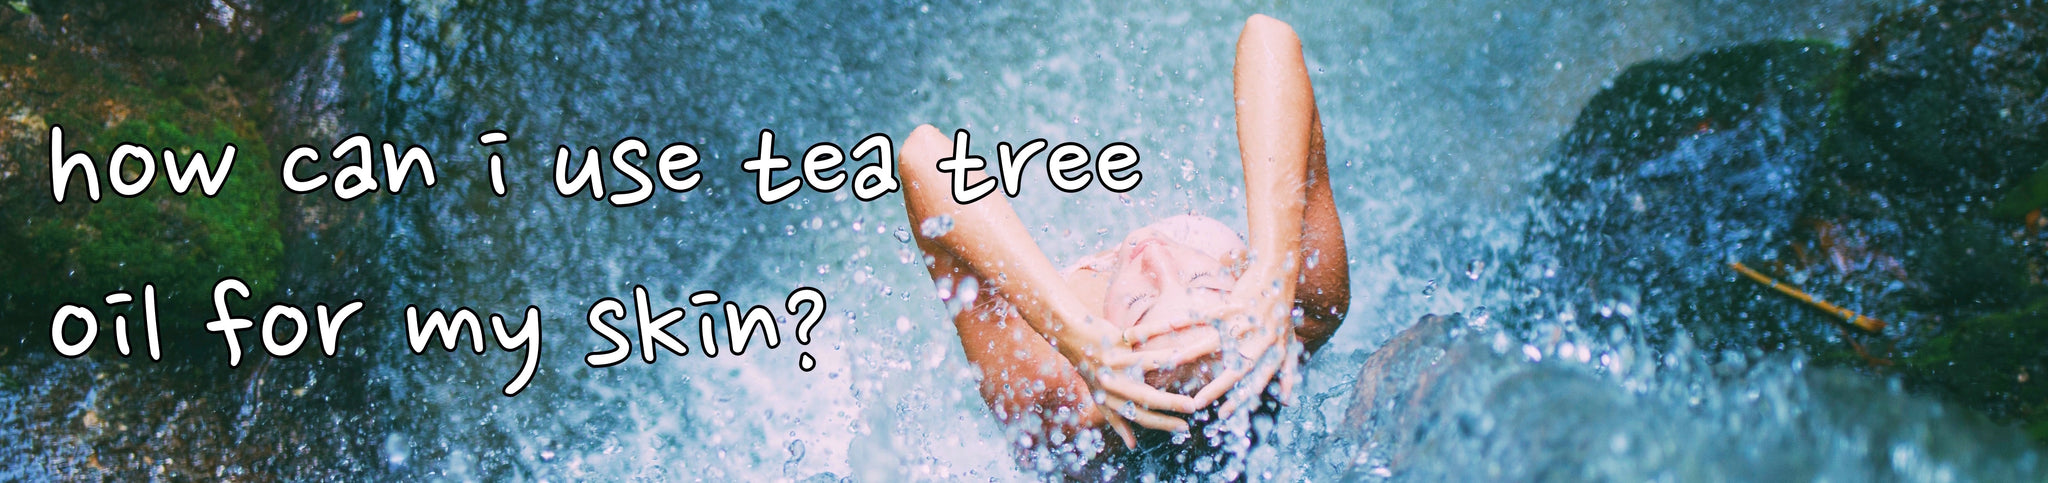 how can i use tea tree oil for my skin?